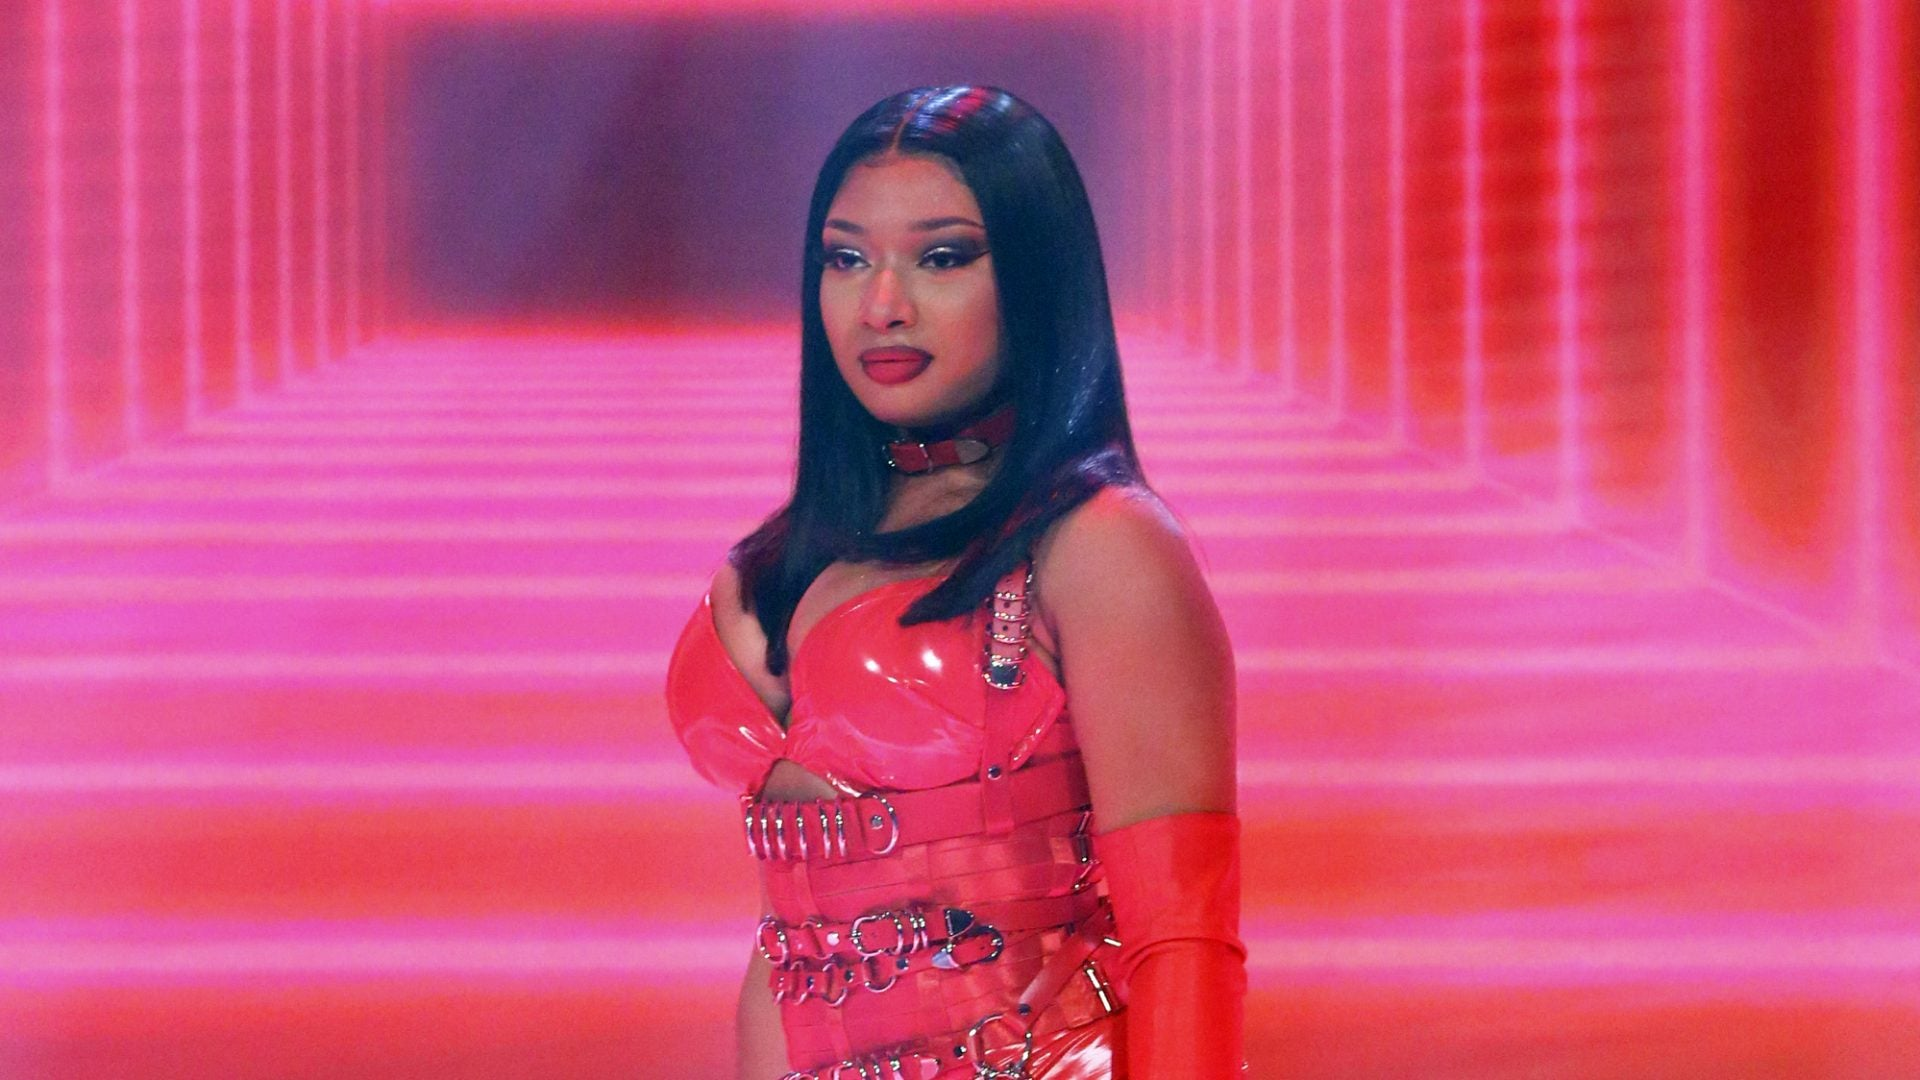 megan-thee-stallion-says-shes-traumatized-after-being-shot-black-women-are-so-unprotected